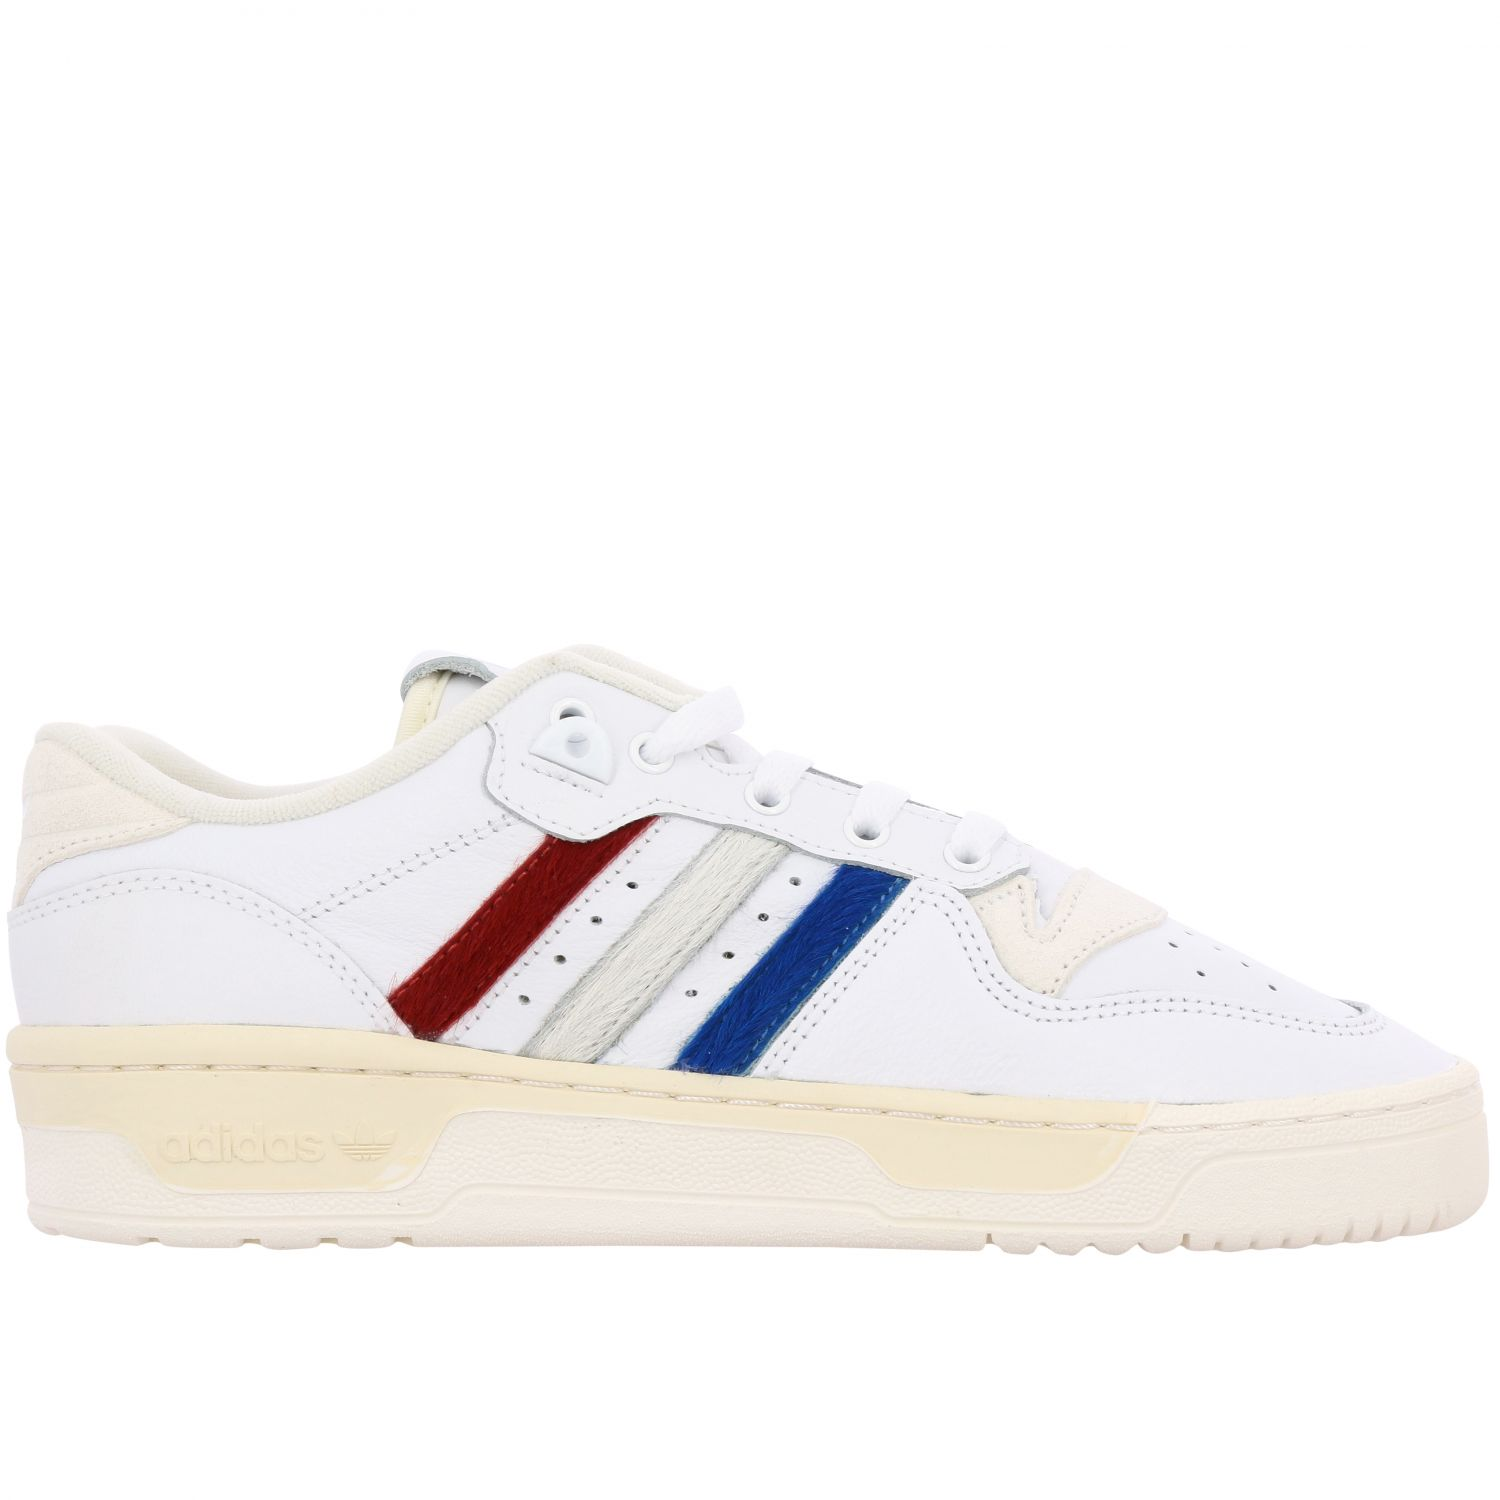 Sneakers Adidas Originals: Shoes men Adidas Originals white 1